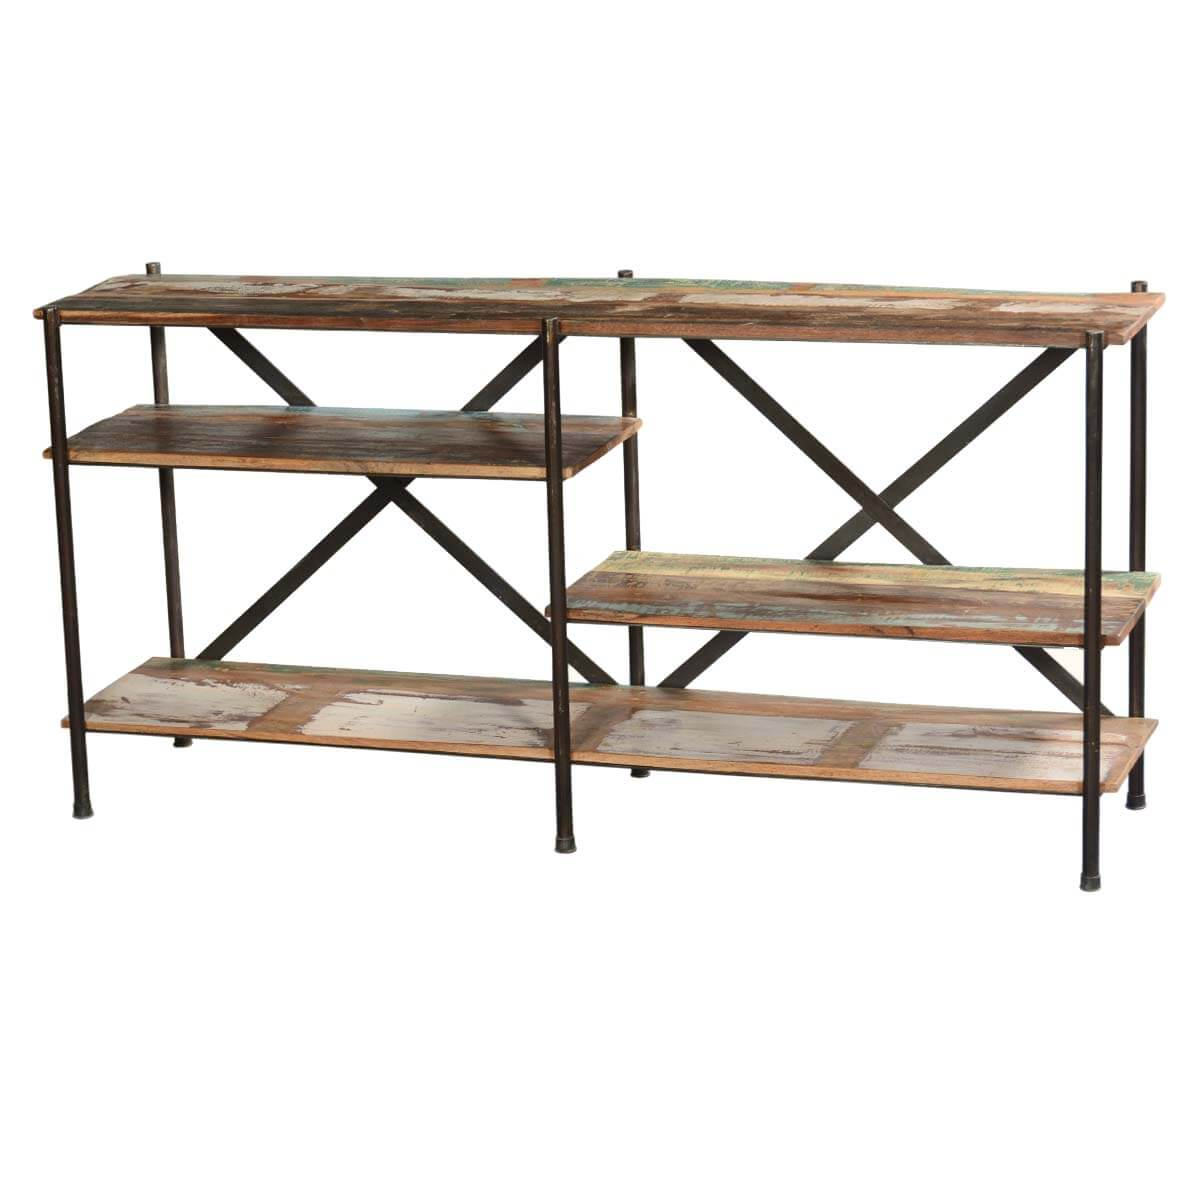 Double X Reclaimed Wood & Iron 65 Long Wall Unit Display Shelves